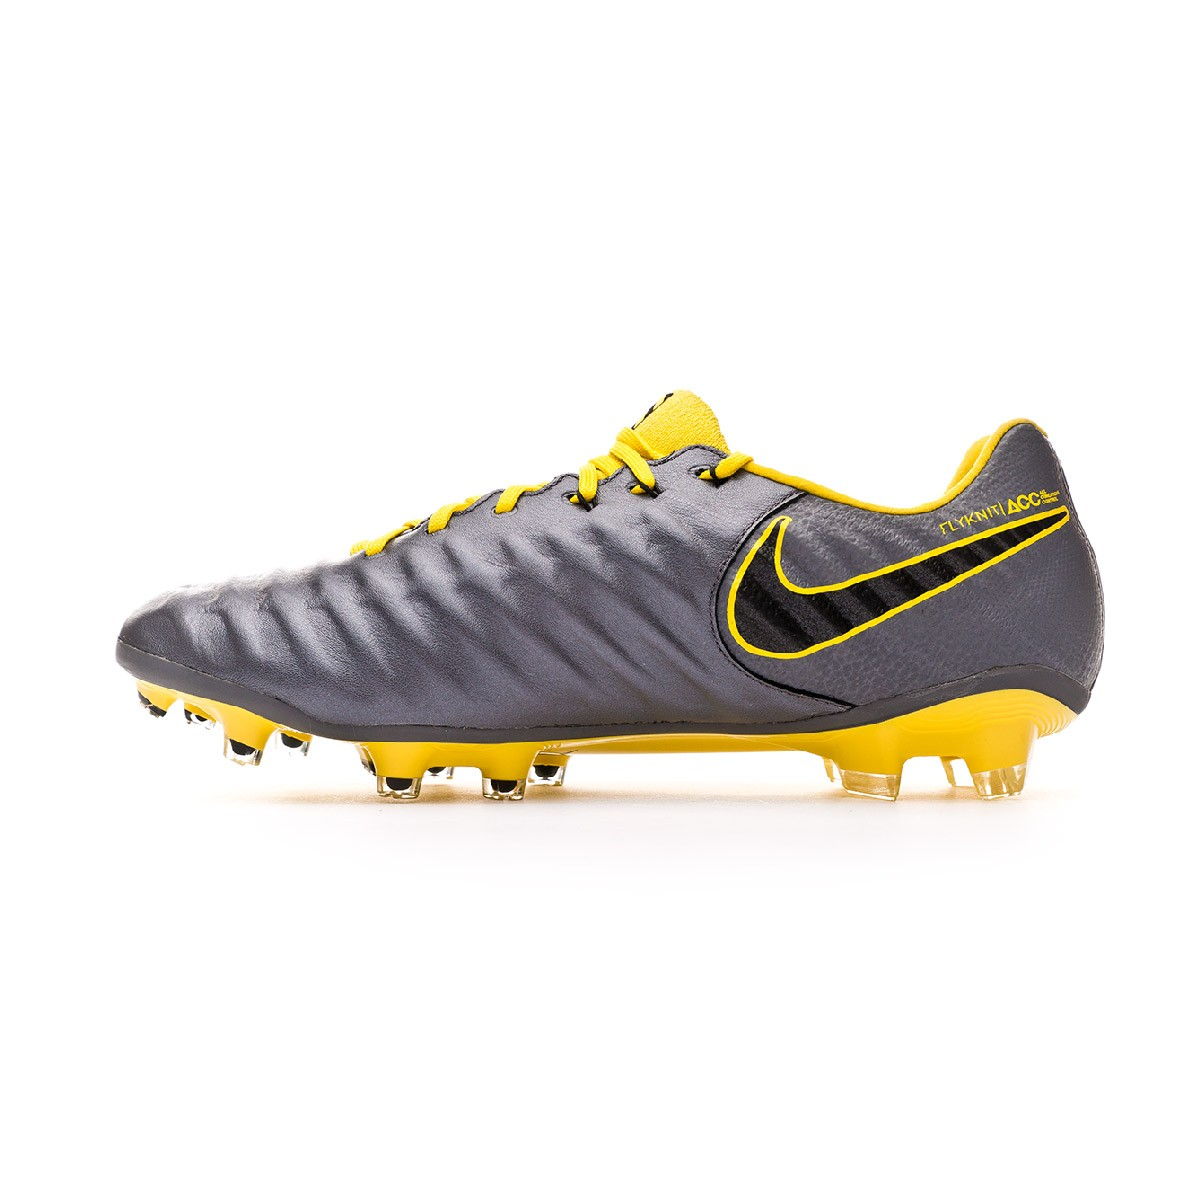 Chaussure de foot Nike Tiempo Legend VII Elite FG